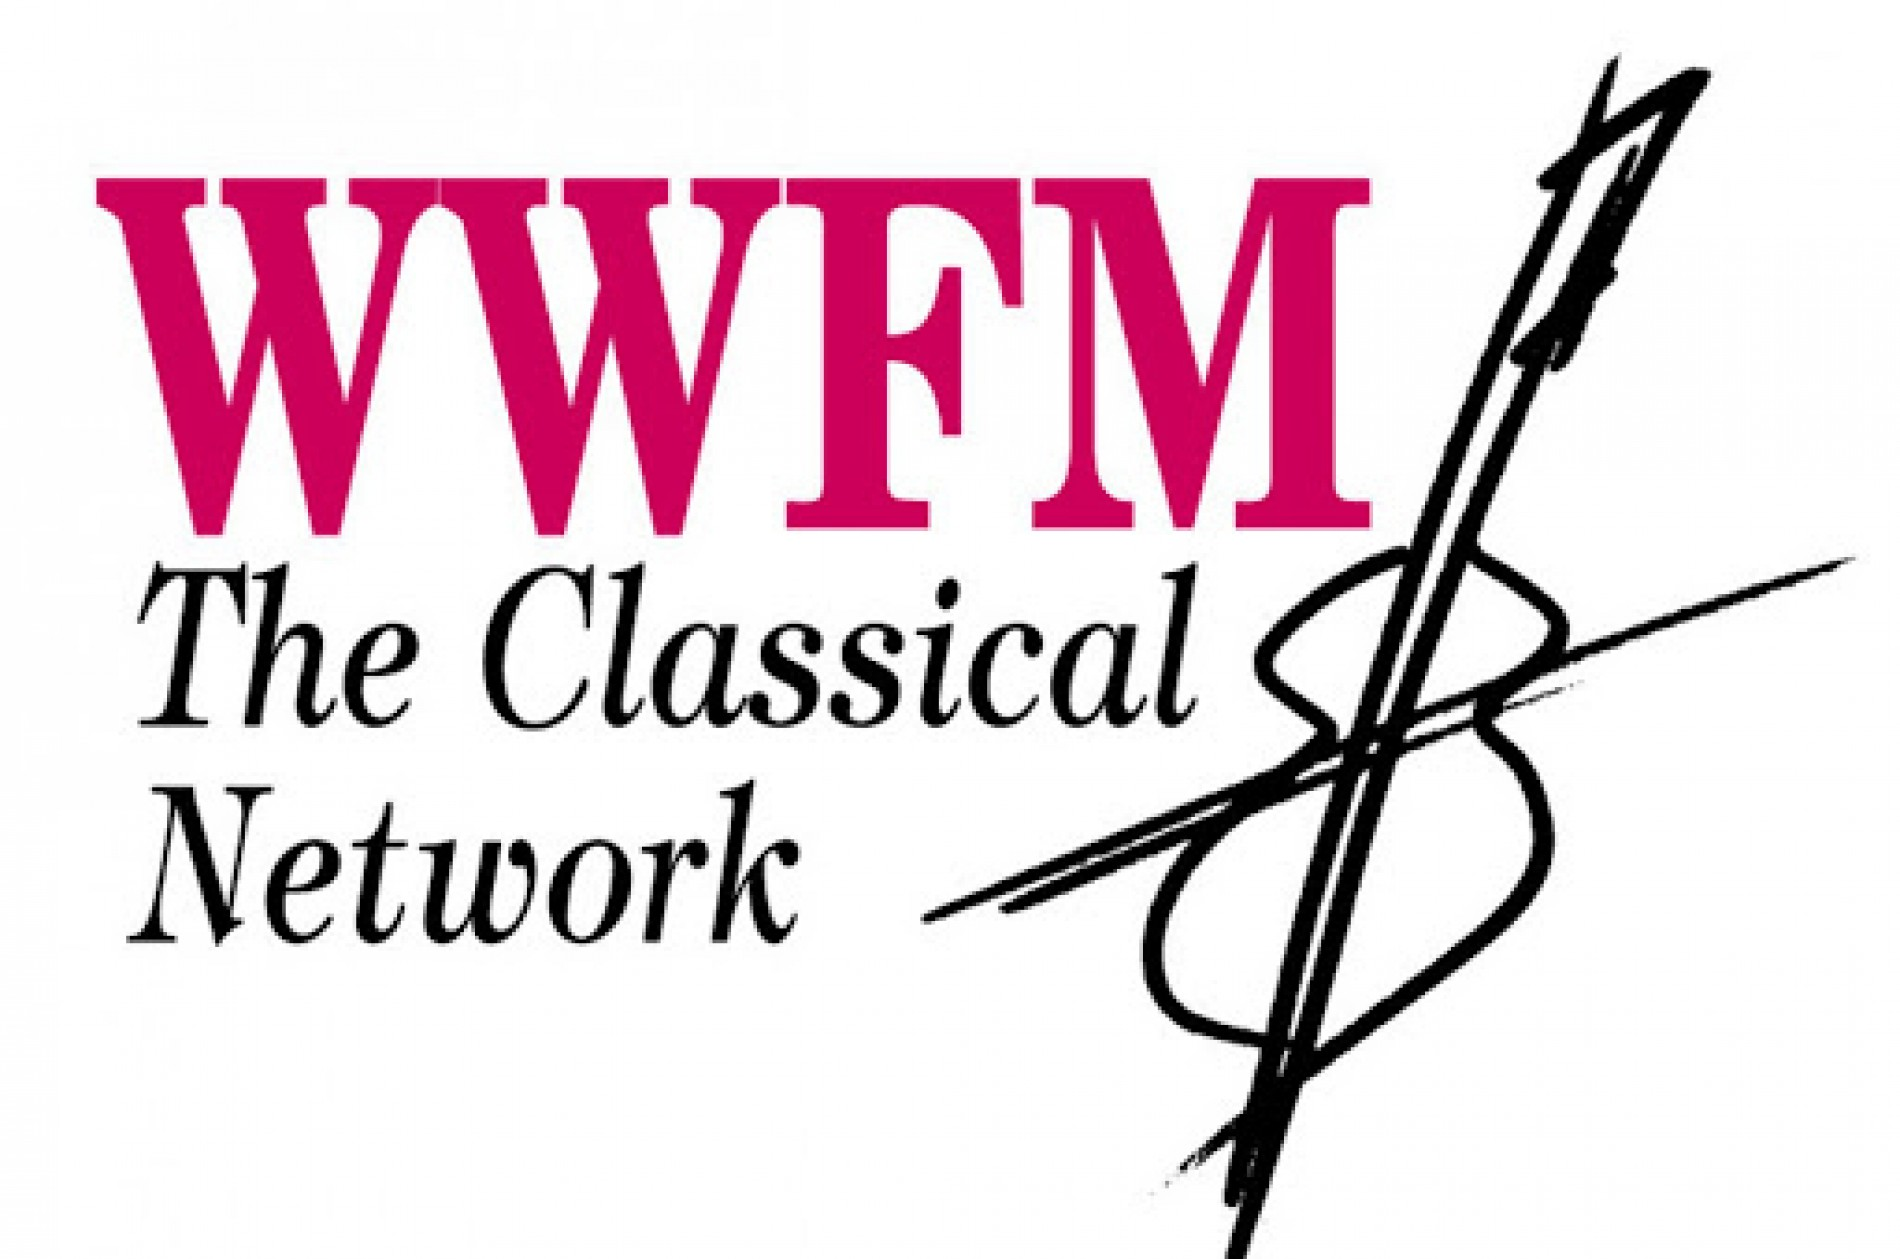 WWFM - The Classical Network